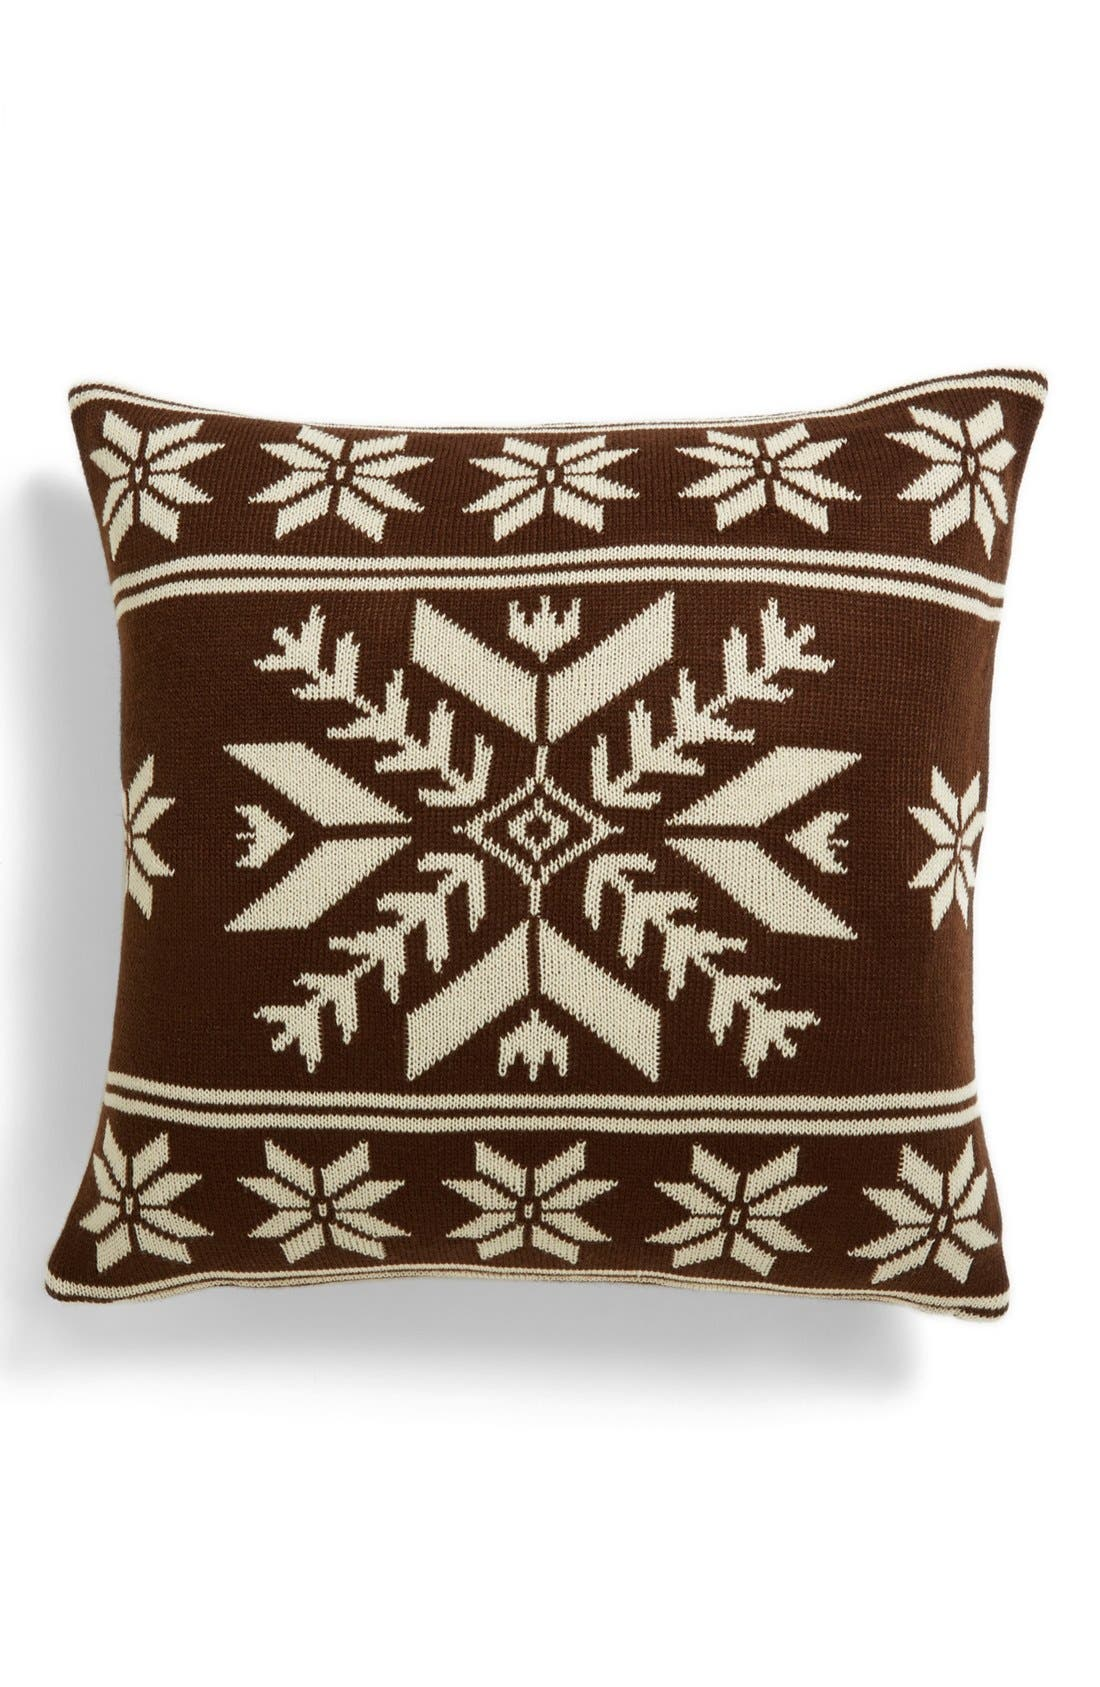 Main Image - Kennebunk Home 'Snowflake' Pillow